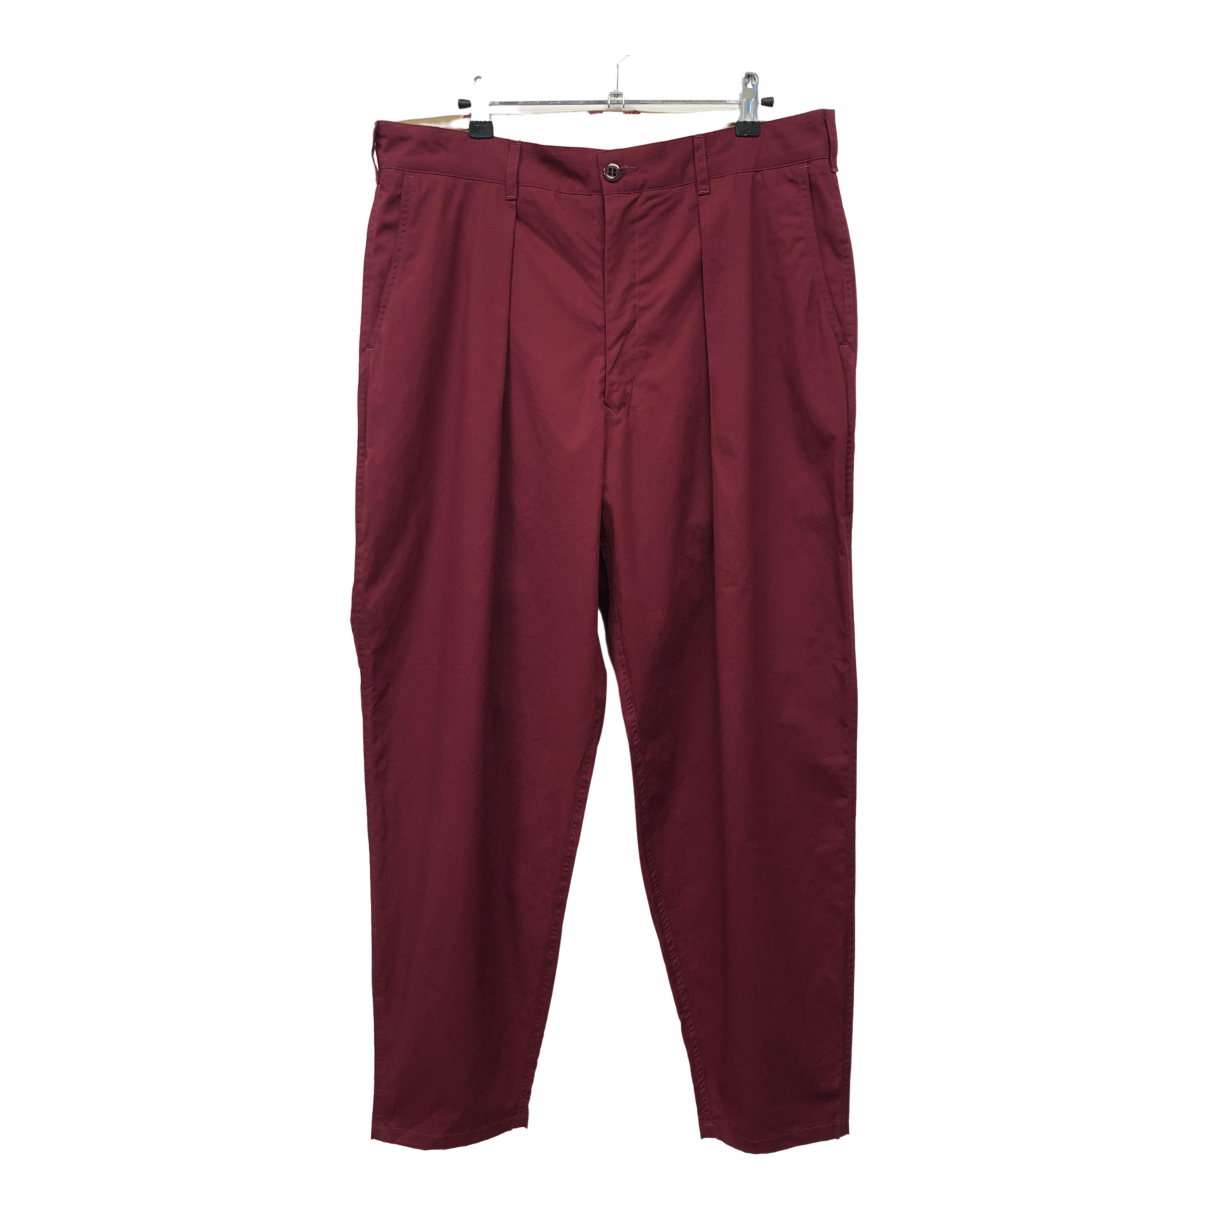 Monitaly \N Red Cotton Trousers for Men 34 UK - US